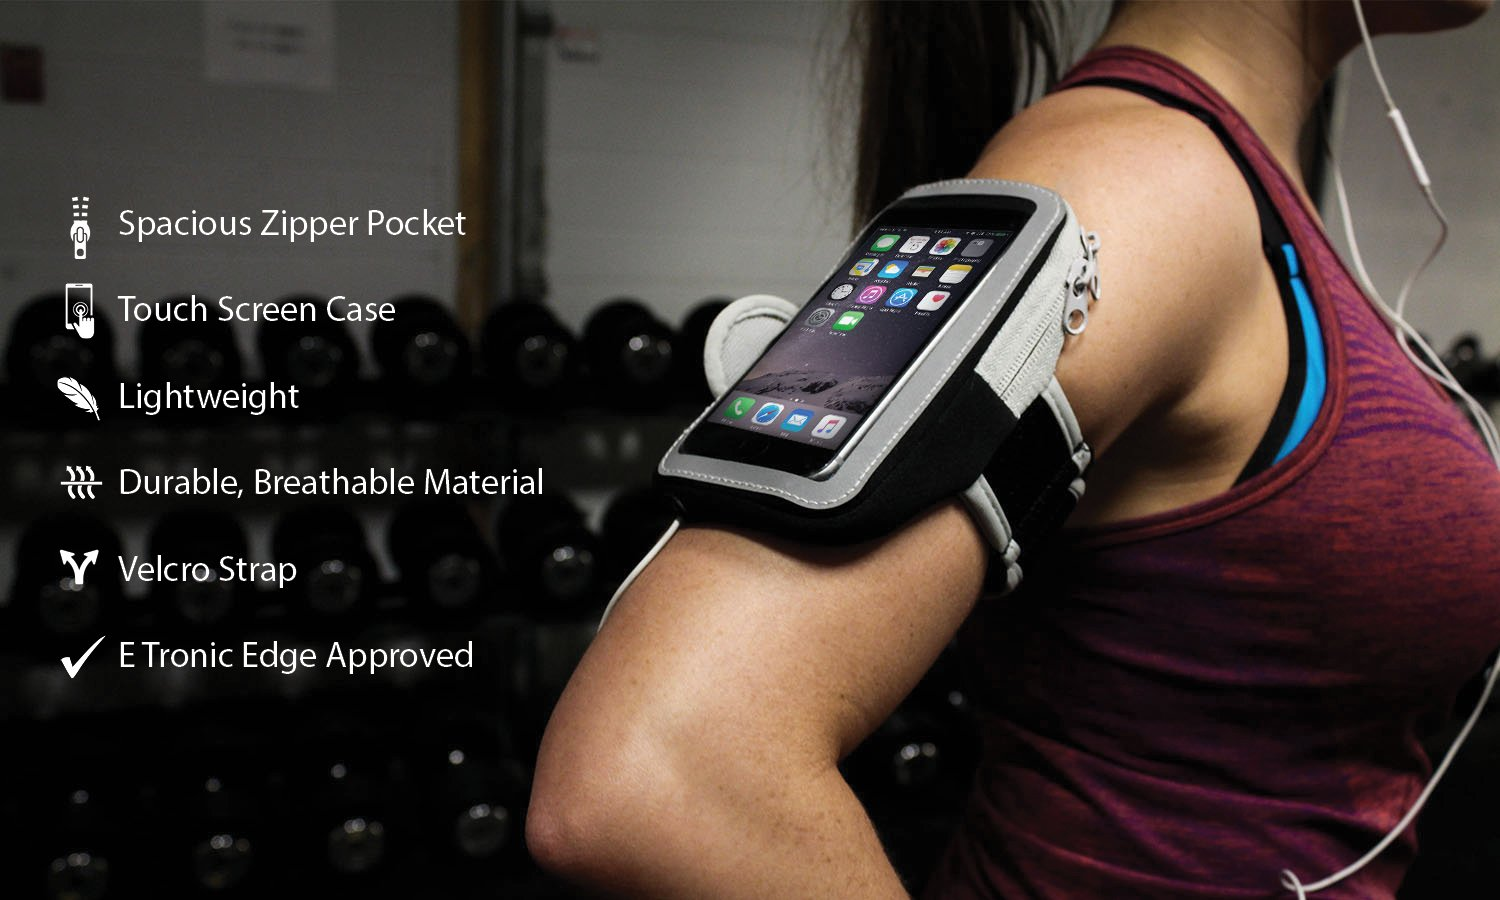 Sports Armband: Cell Phone Holder Case Arm Band Strap With Zipper Pouch/ Mobile Exercise Running Workout For Apple iPhone 6 6S 7 Plus Touch Android Samsung Galaxy S5 S6 S7 Note 4 5 Edge LG HTC Pixel by E Tronic Edge (Image #9)